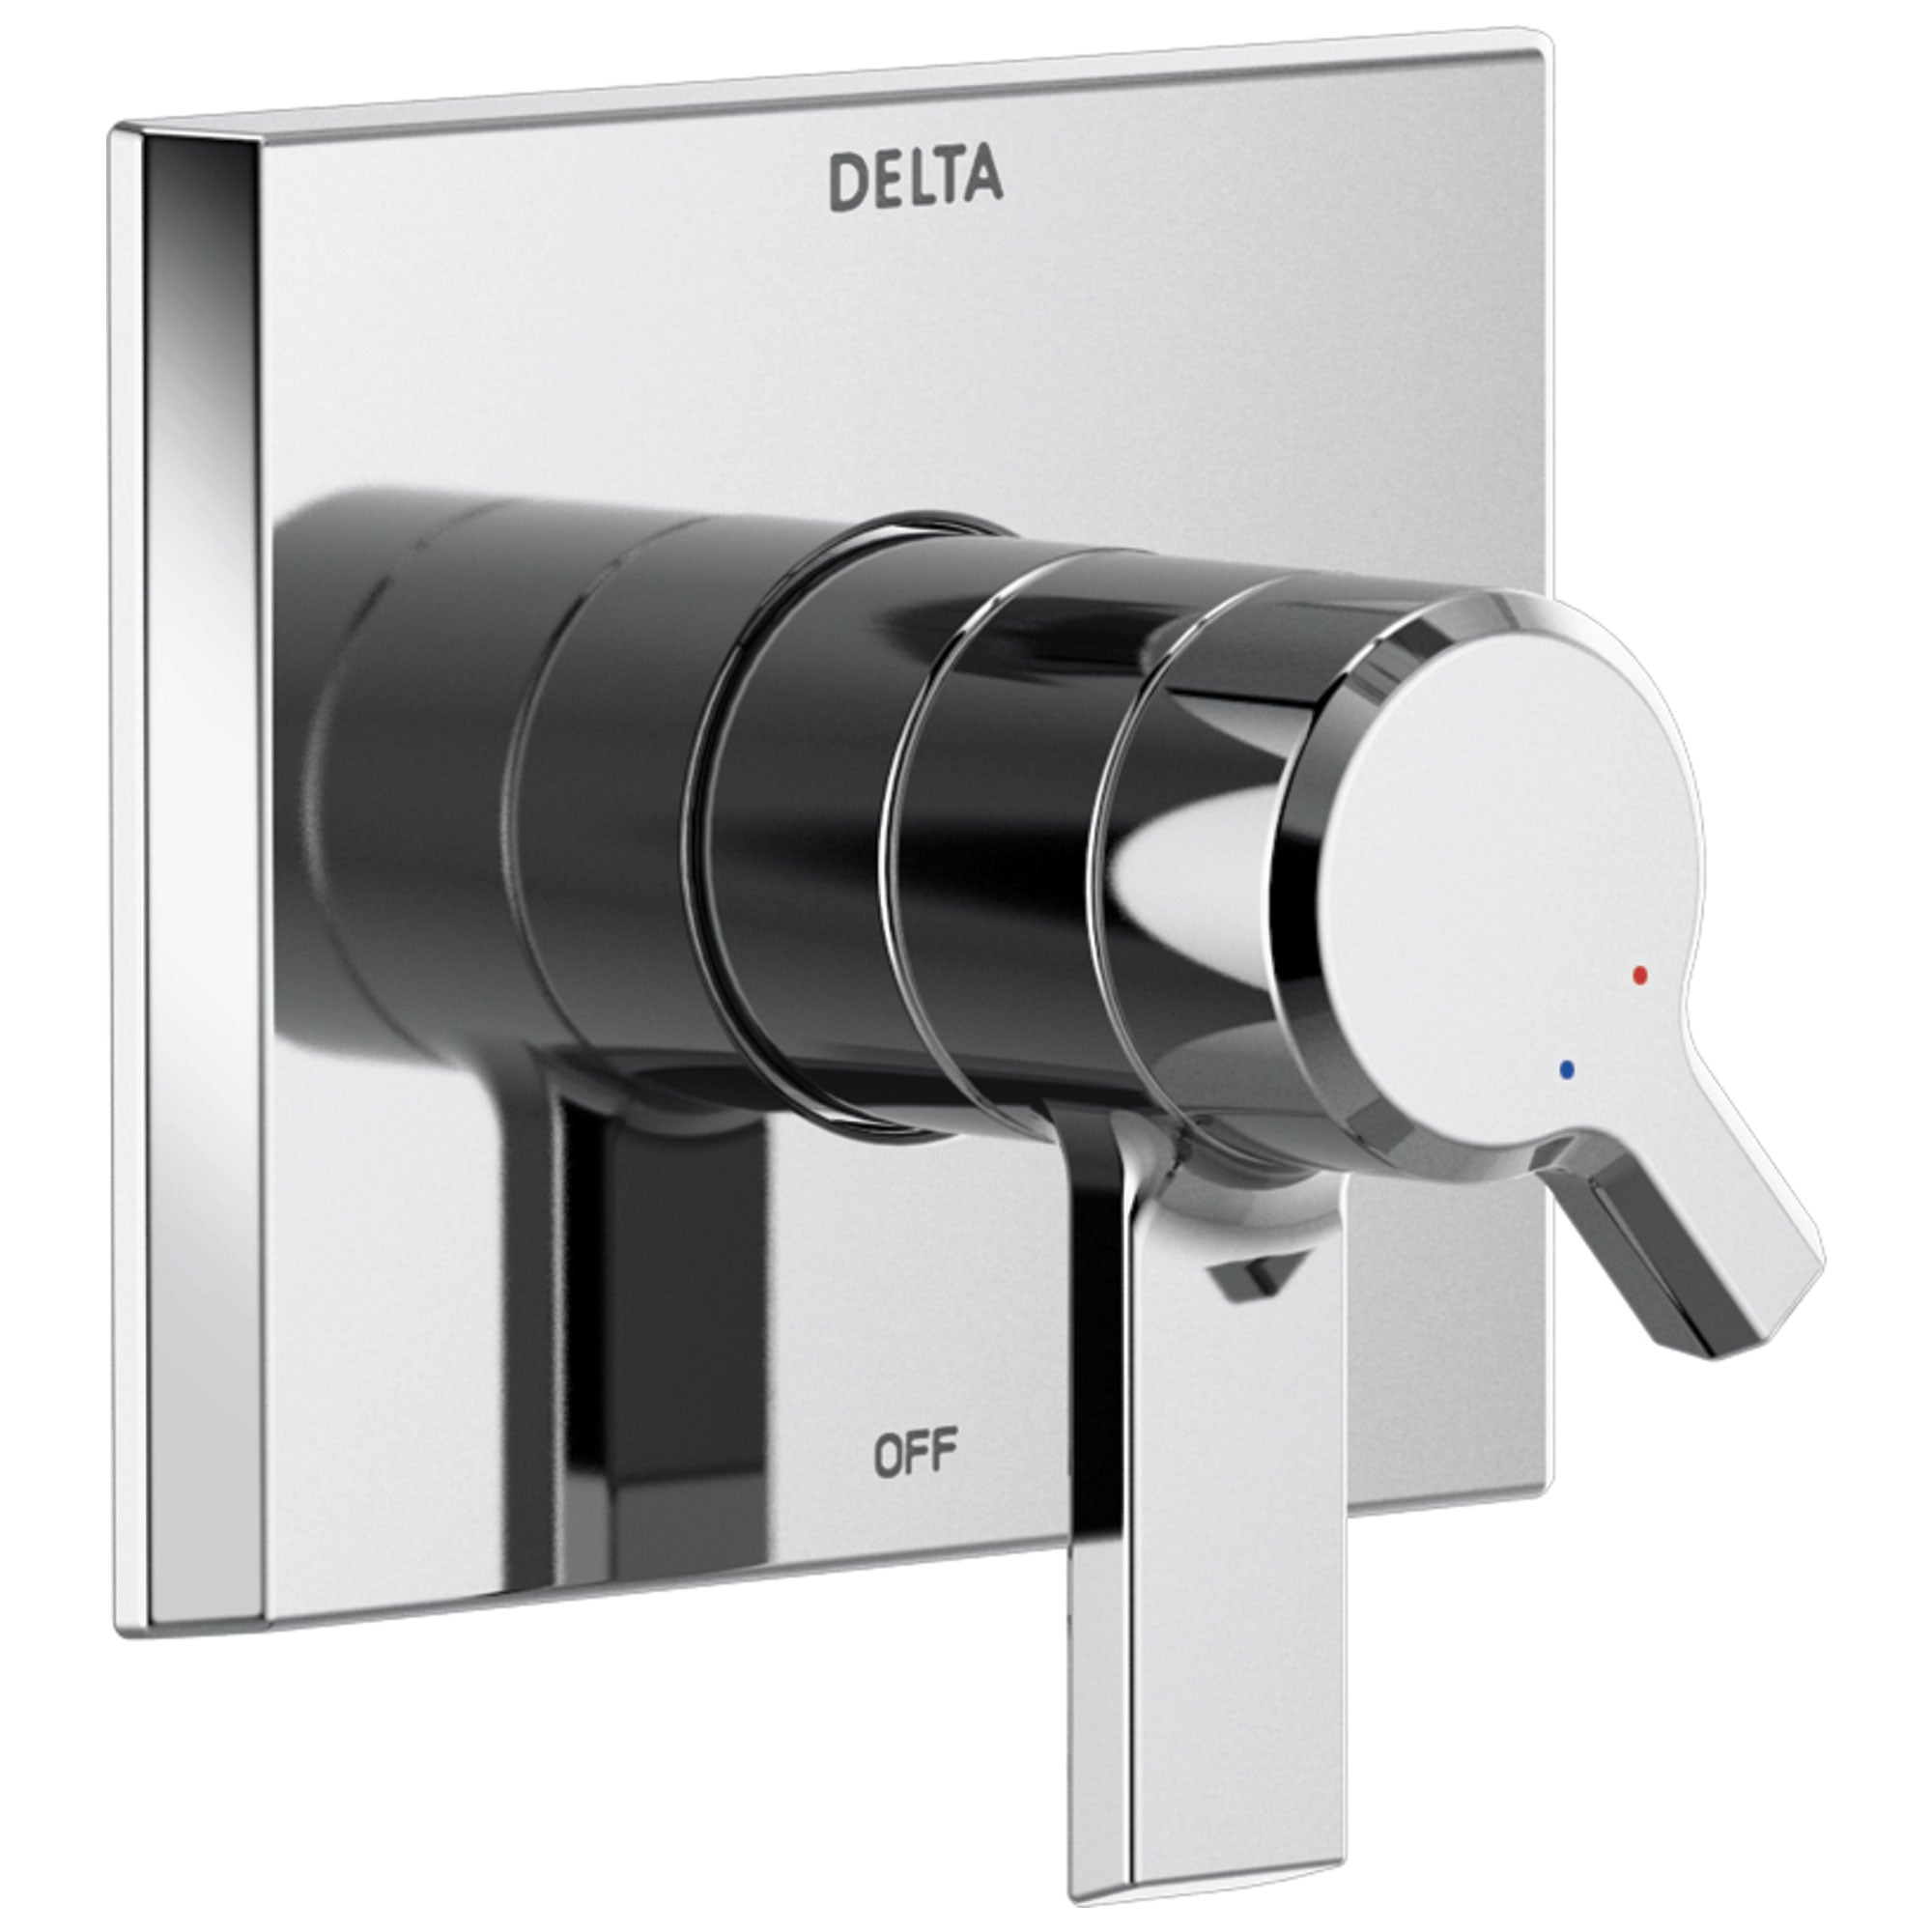 Delta Pivotal Modern Chrome Finish Monitor 17 Series Shower Faucet Control Includes Handles, Cartridge, and Valve without Stops D3397V